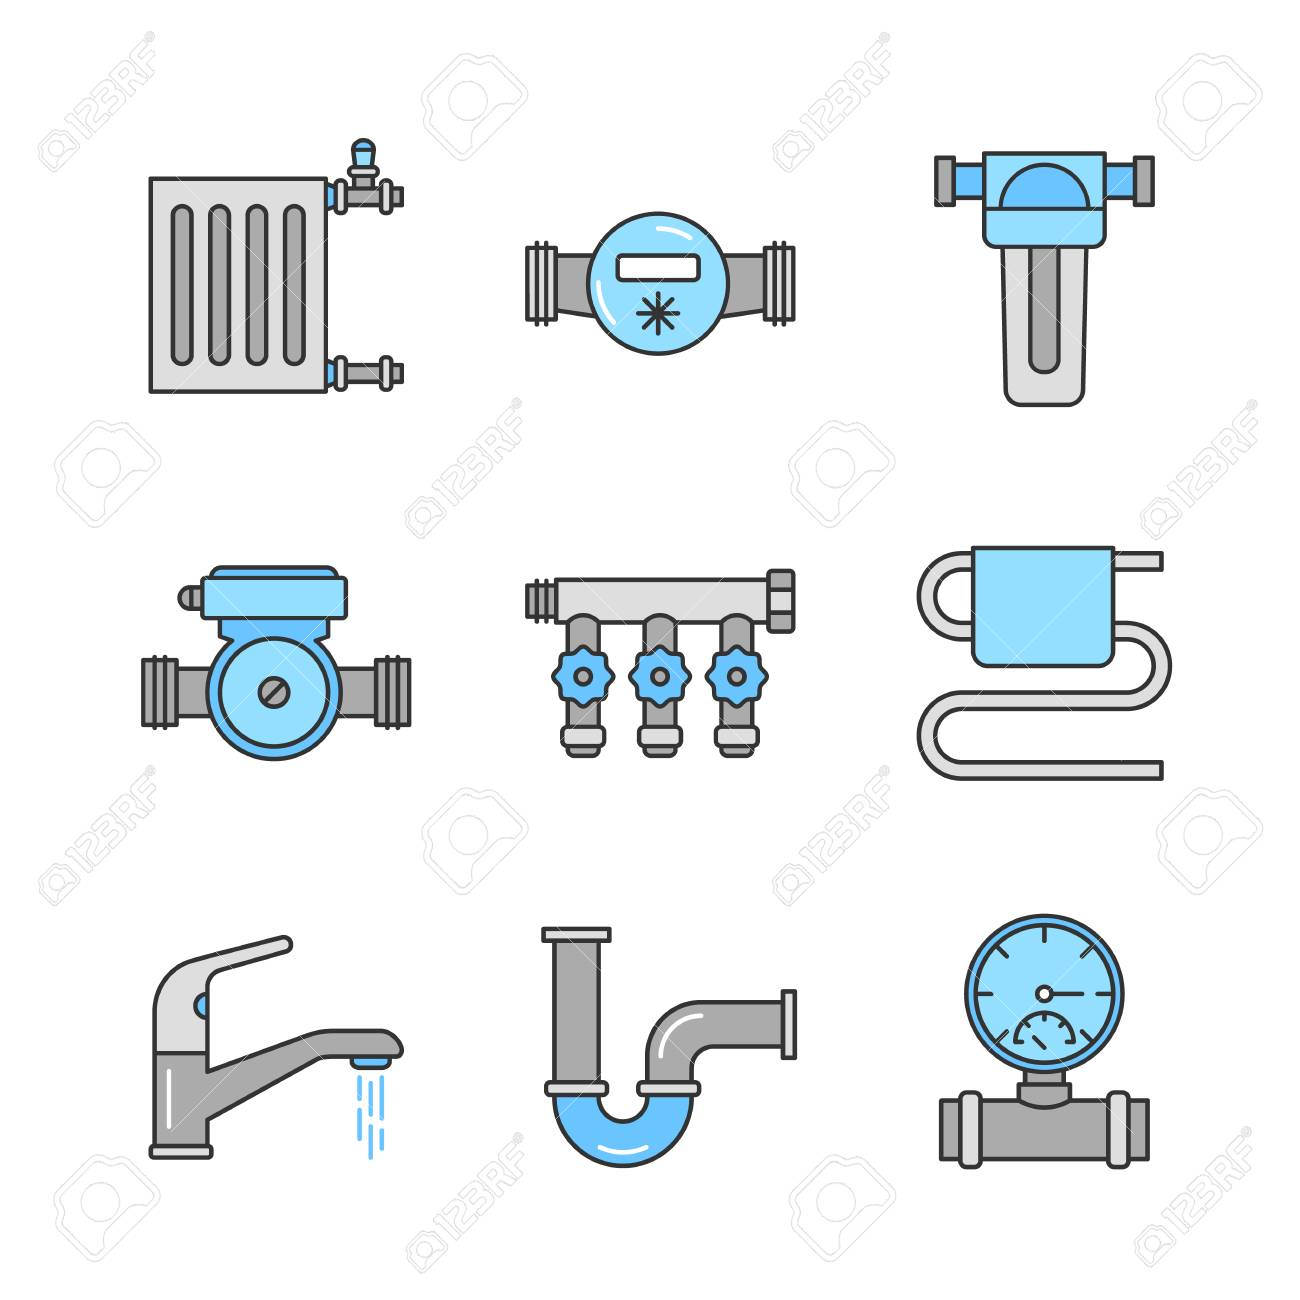 Plumbing color icons set. Radiator, water meter, pump and filter, pressure gauge, manifold tap, towel rail, faucet, pipe. Isolated vector illustrations - 93837389